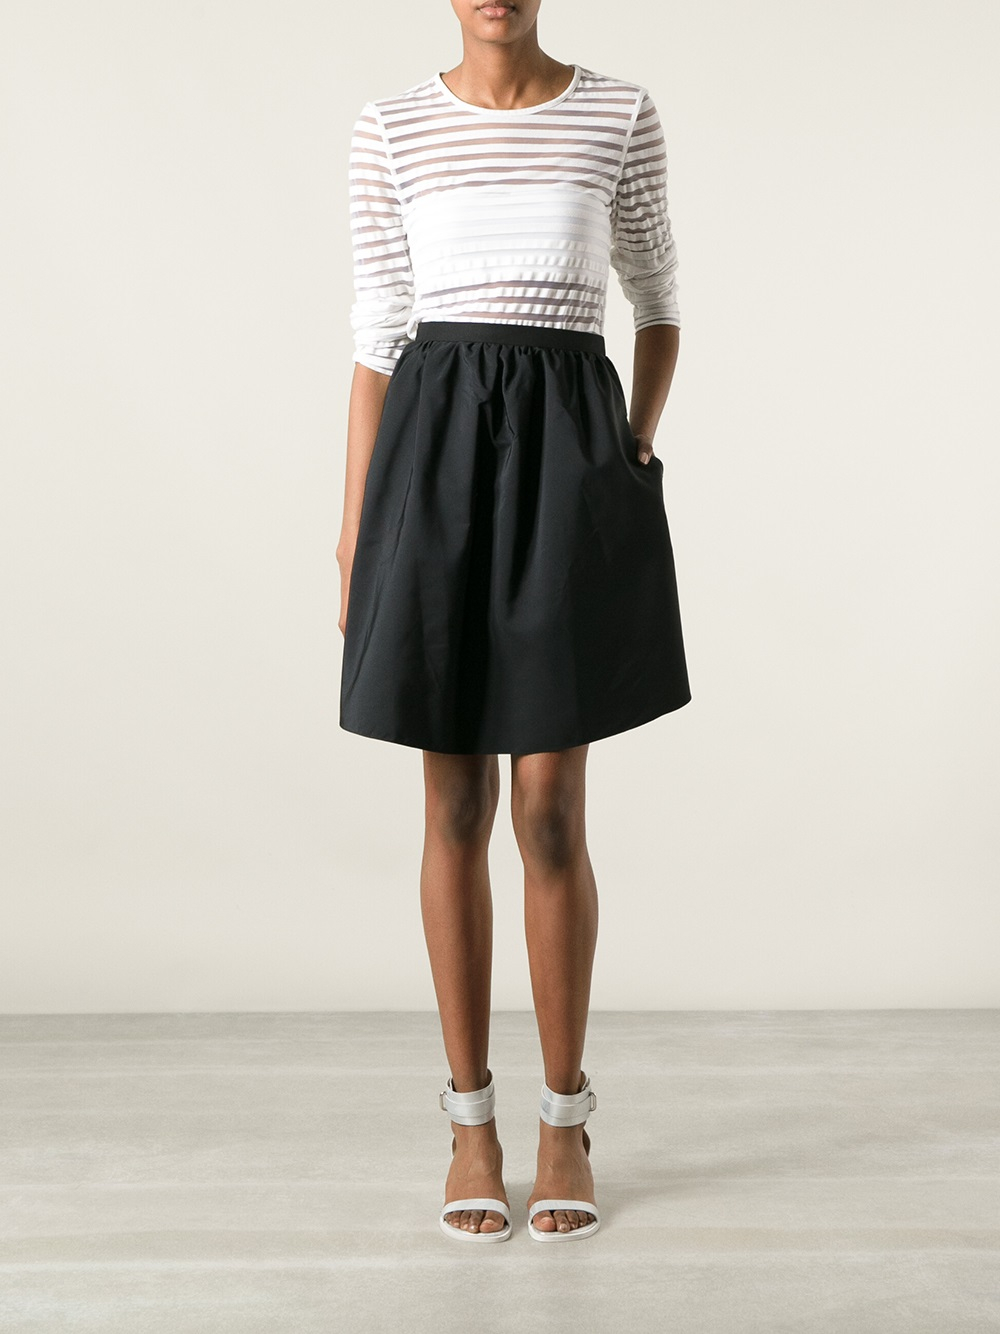 Carven Aline Skirt in Black | Lyst